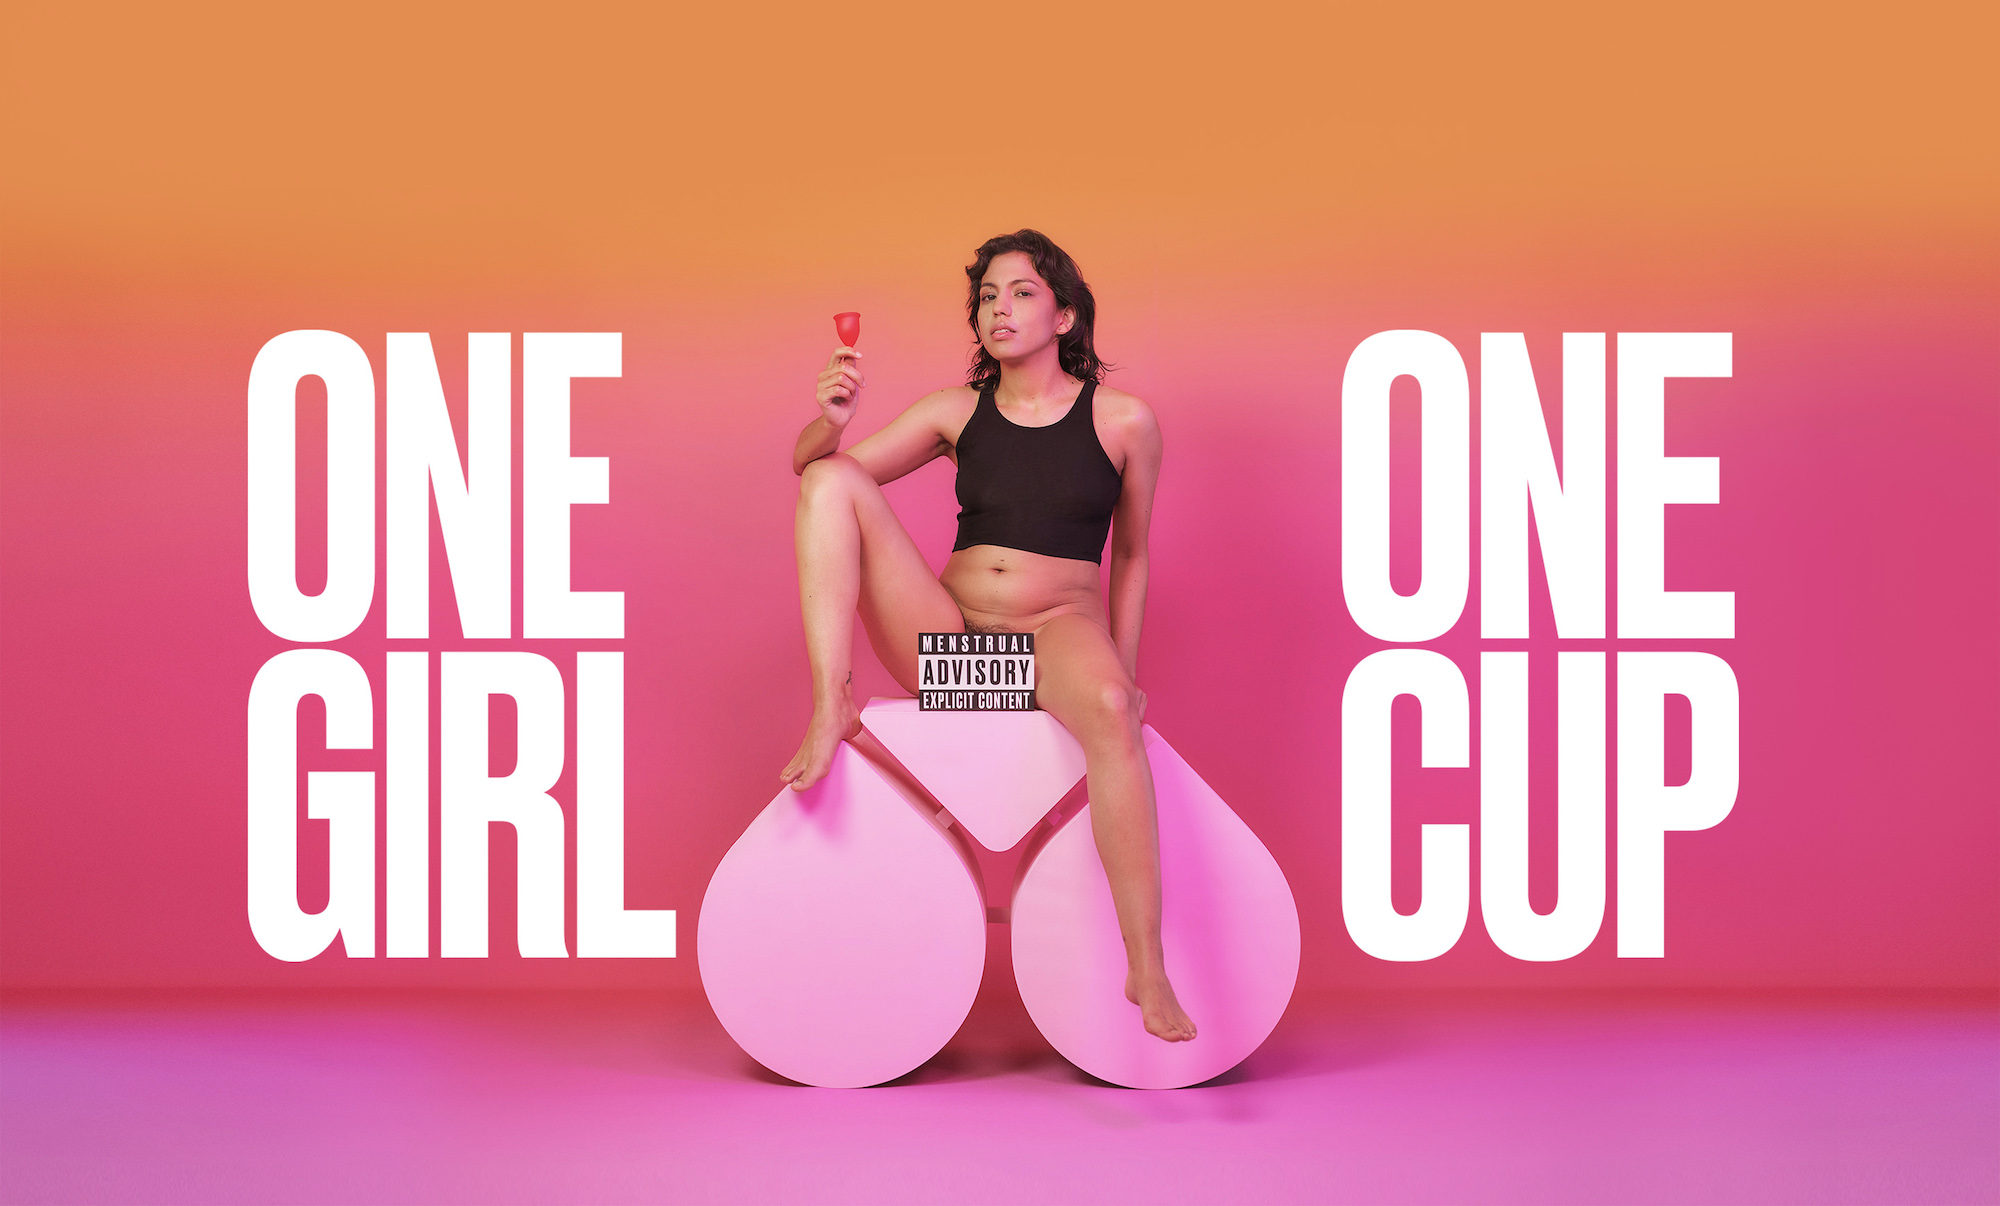 one girl one cup